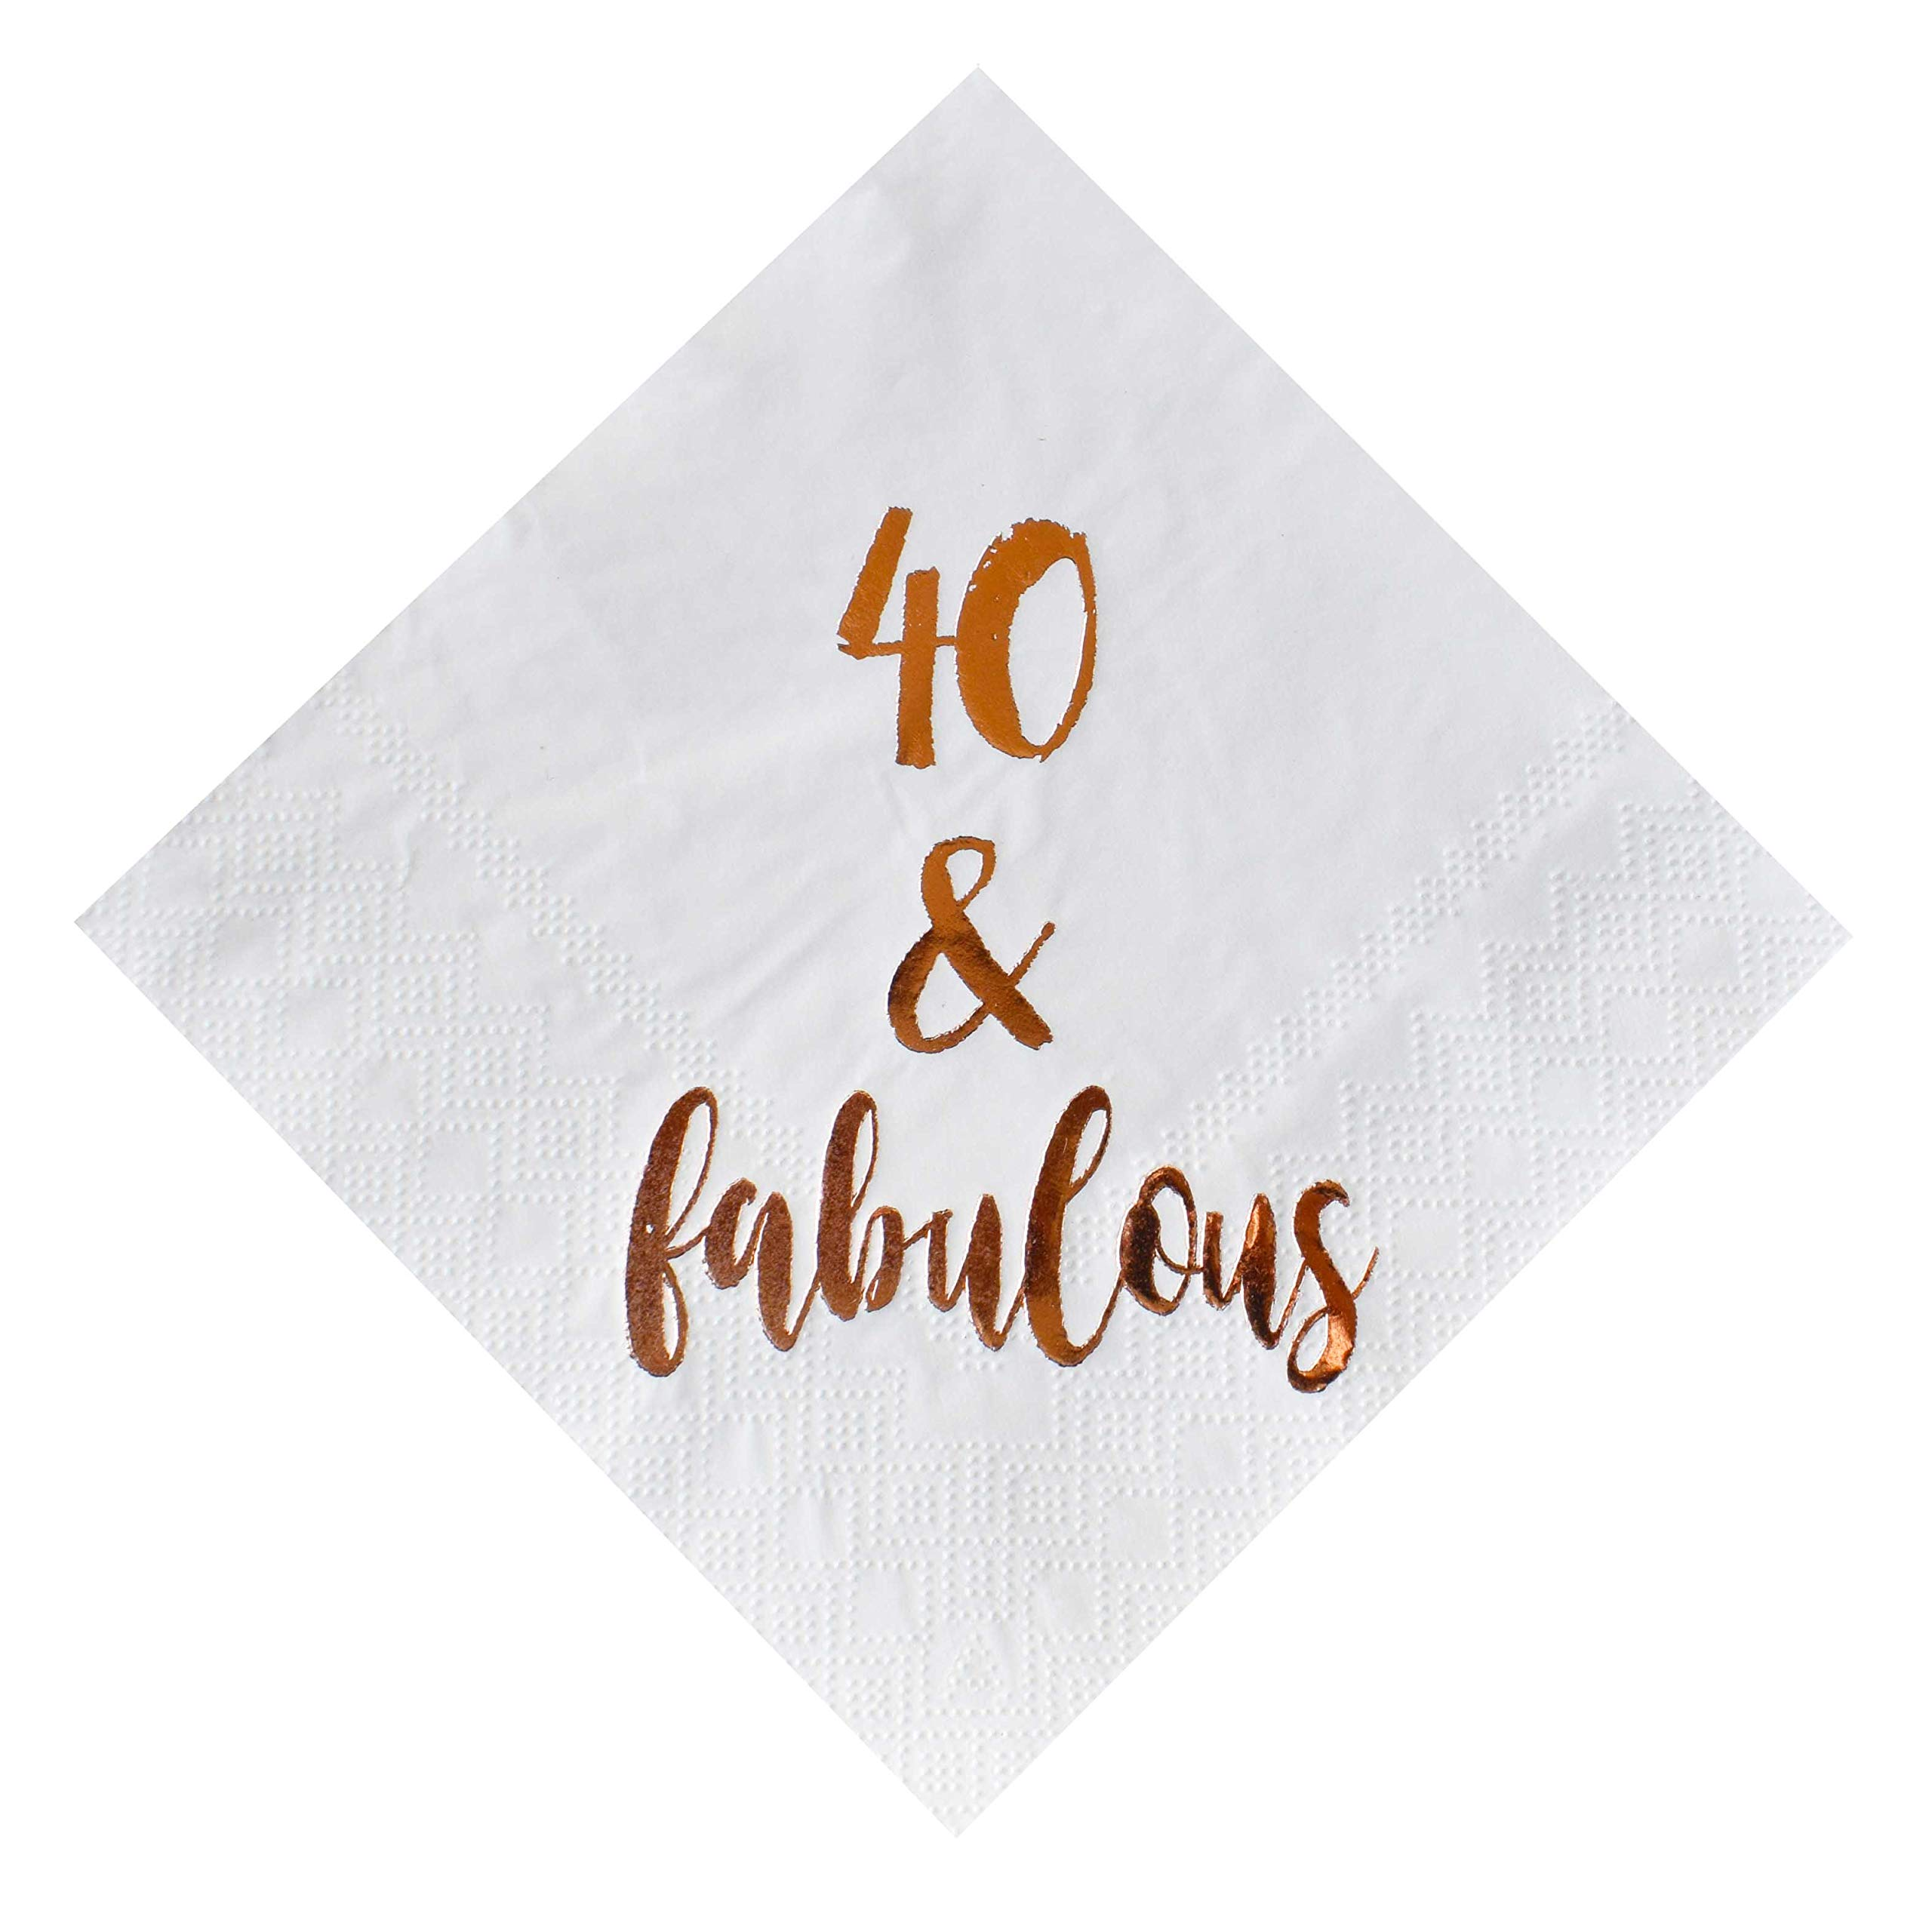 Amazon com: 40 and Fabulous Cocktail Napkins, 50-Pack 3ply